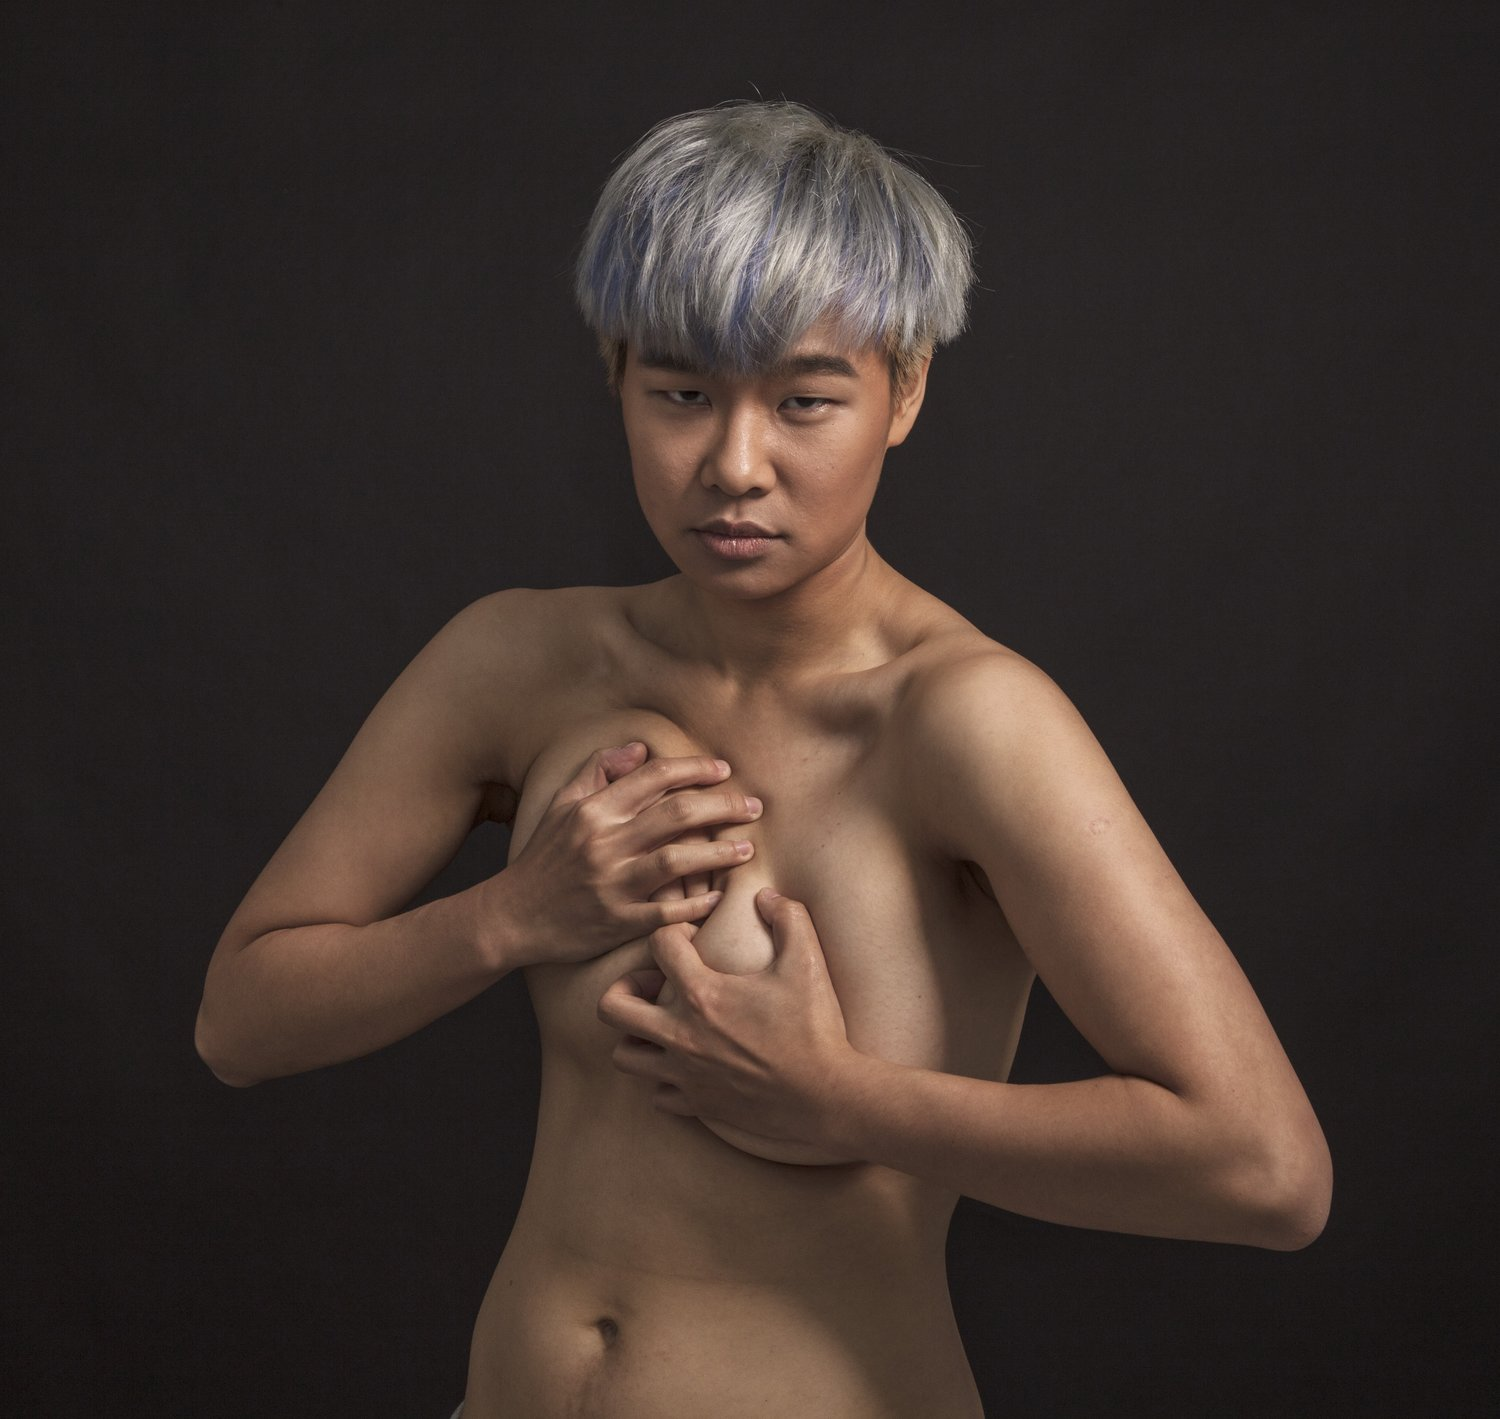 Wen Hsin, 'Half-Blue' 2013. Courtesy of Double Square Gallery